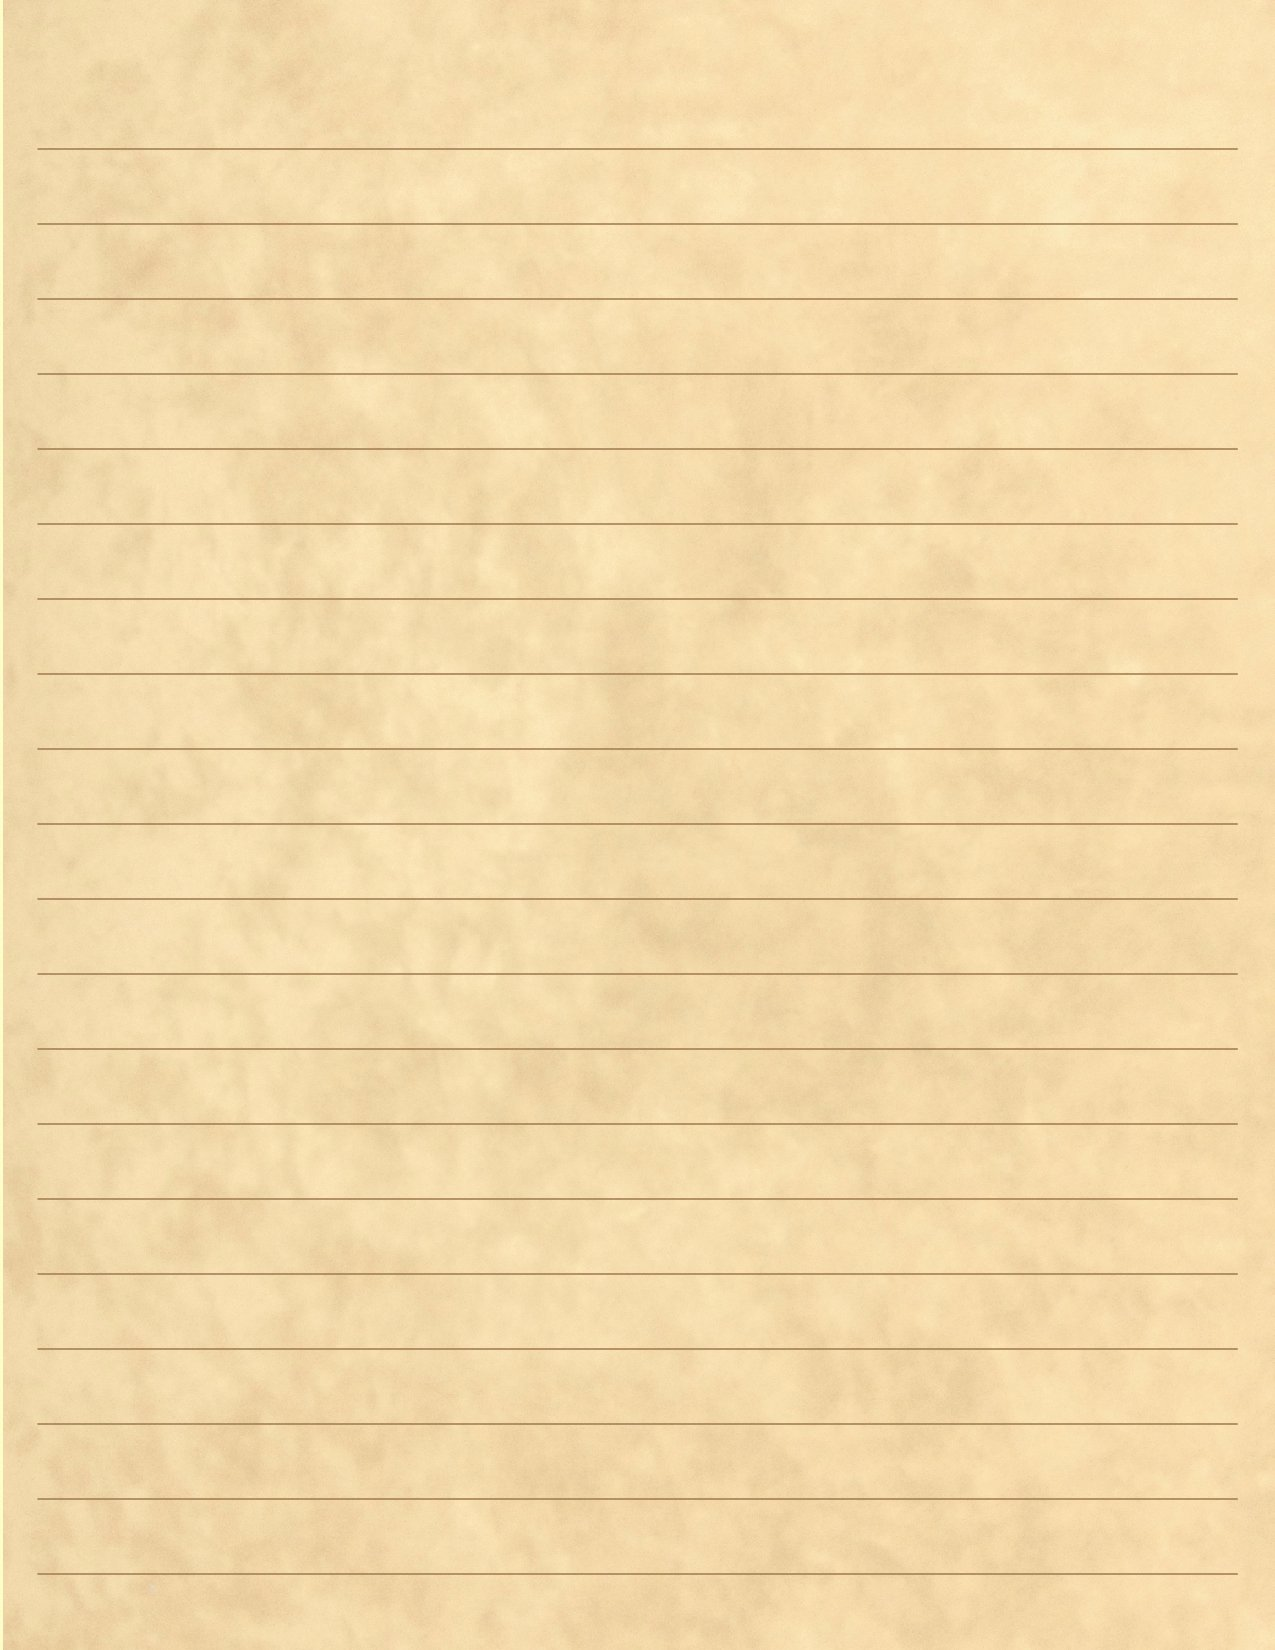 Lined Writing Paper Template Inspirational Printable Handwriting Paper Templates with Lines